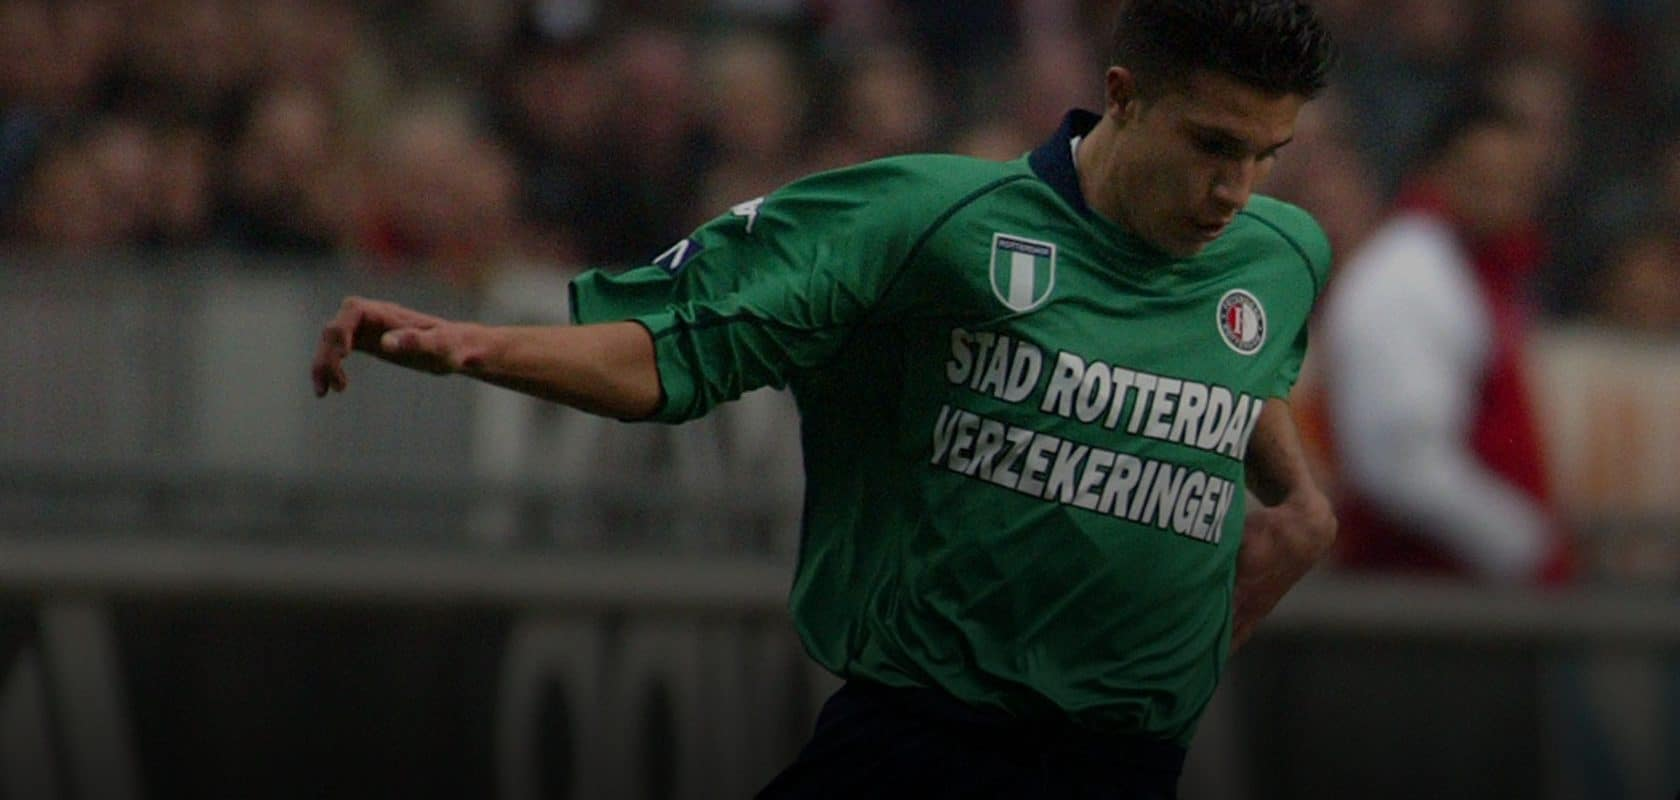 Robin van Persie for Feyenoord against Ajax, February 9, 2003. Photo: VI-Images / Contributor